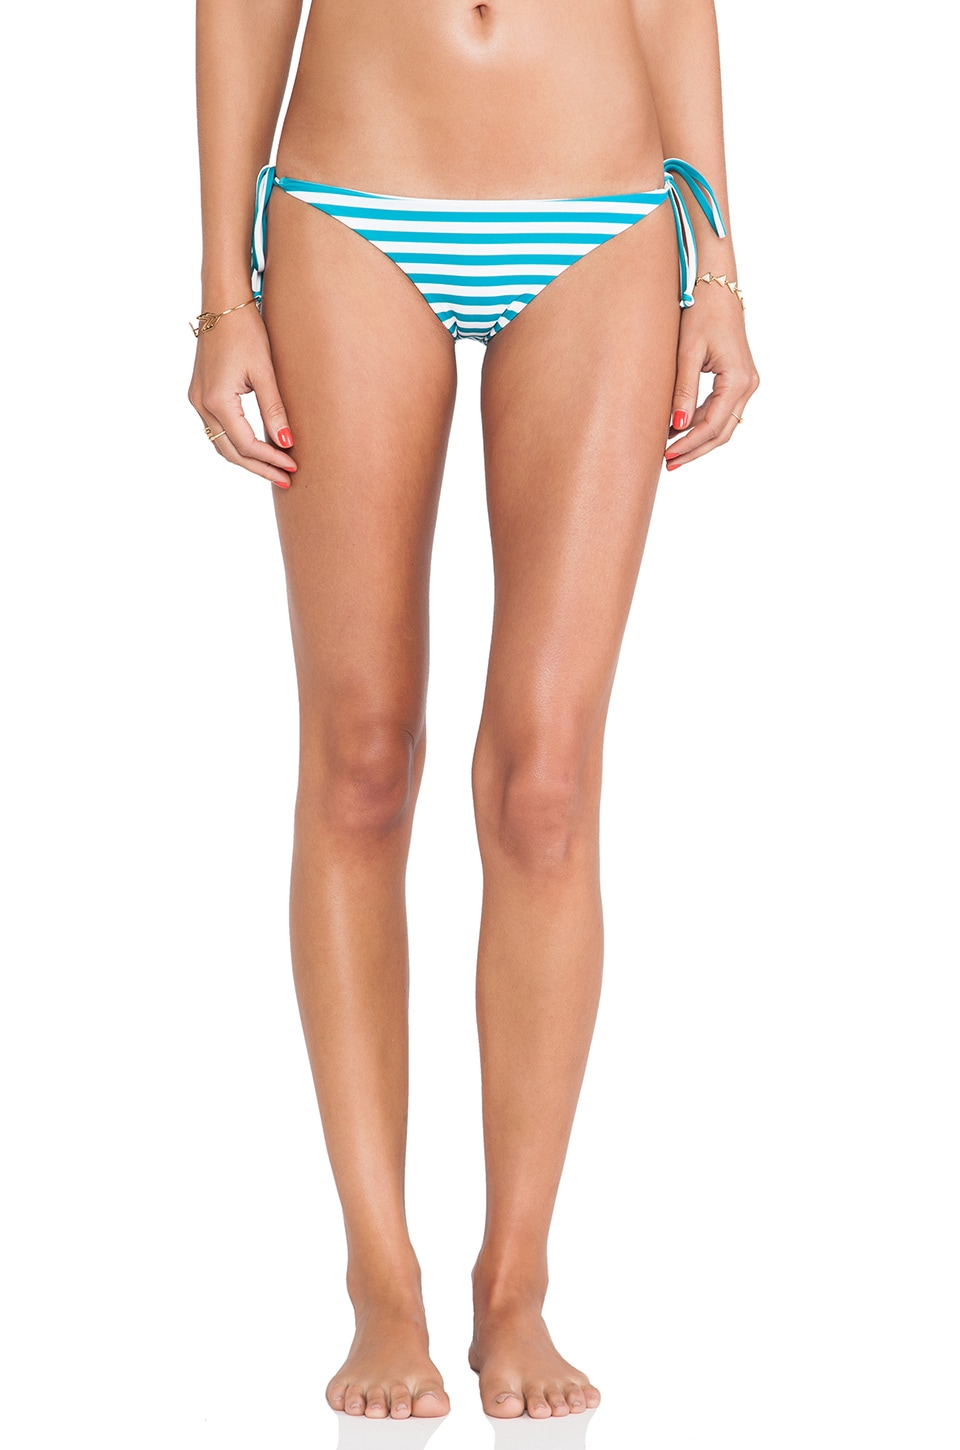 MIKOH Swimwear Venice Basic Tie Bottom in Caribbean Swell